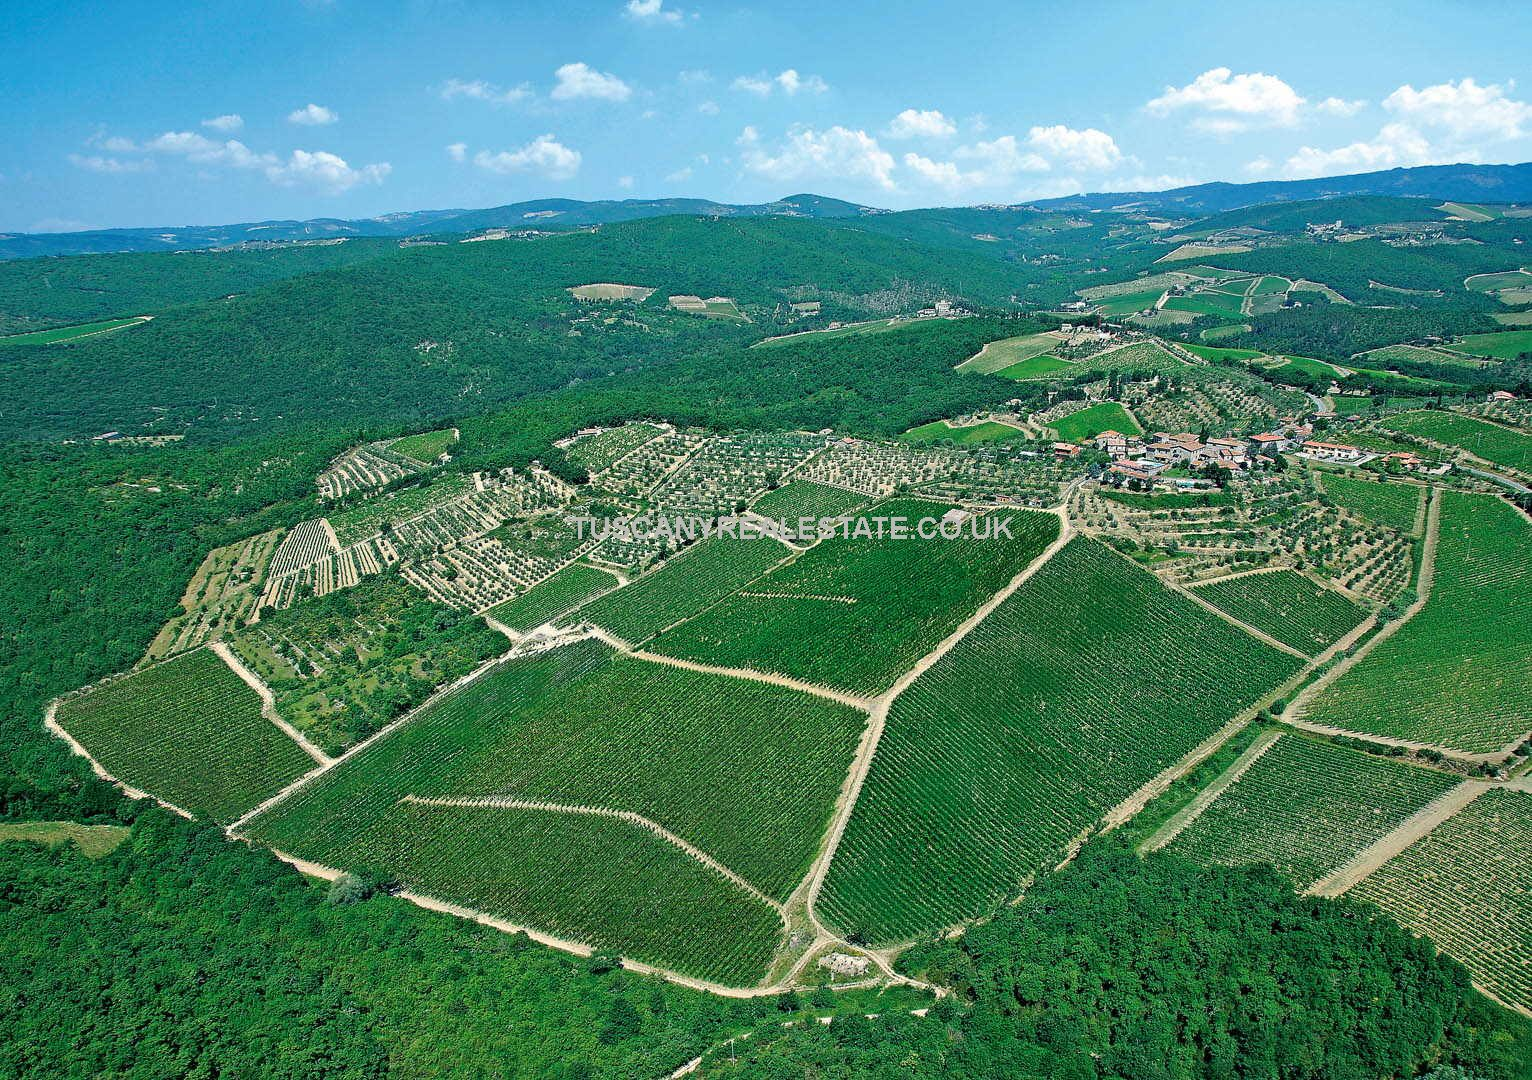 Vineyard in Italy – Chianti Classico Winery